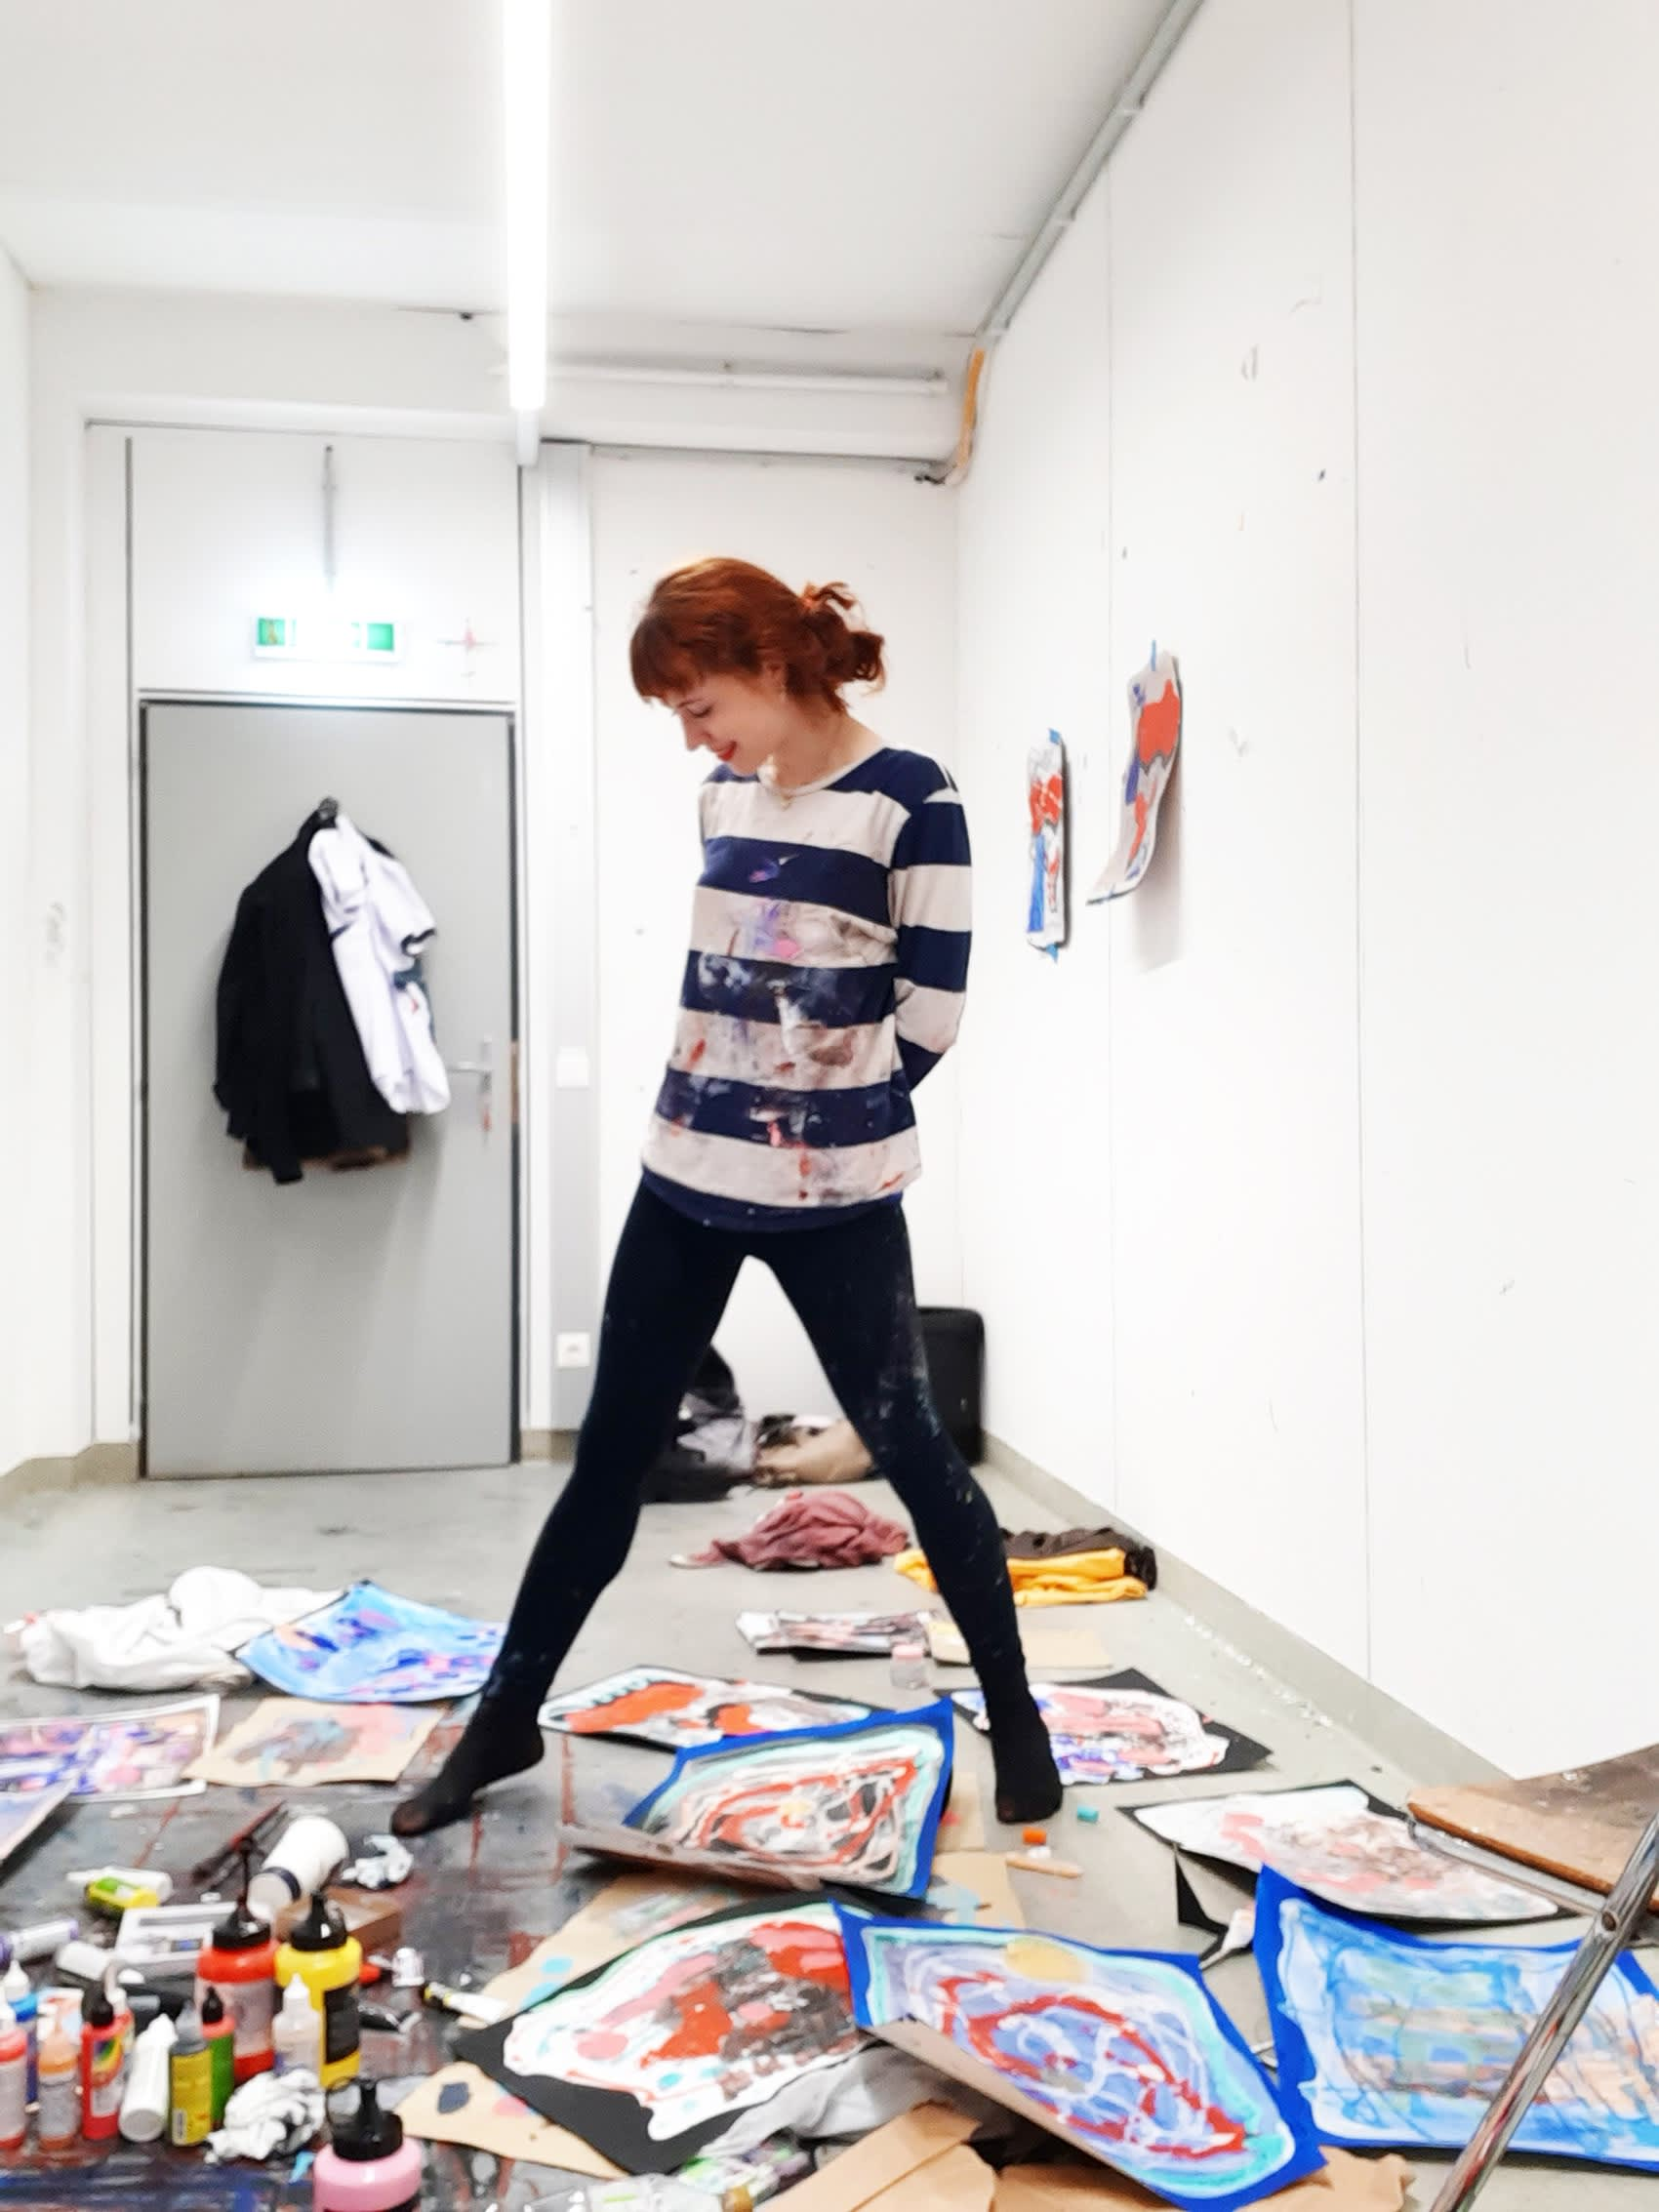 dancing in the artist studio with alexandra feusi, munchies art club